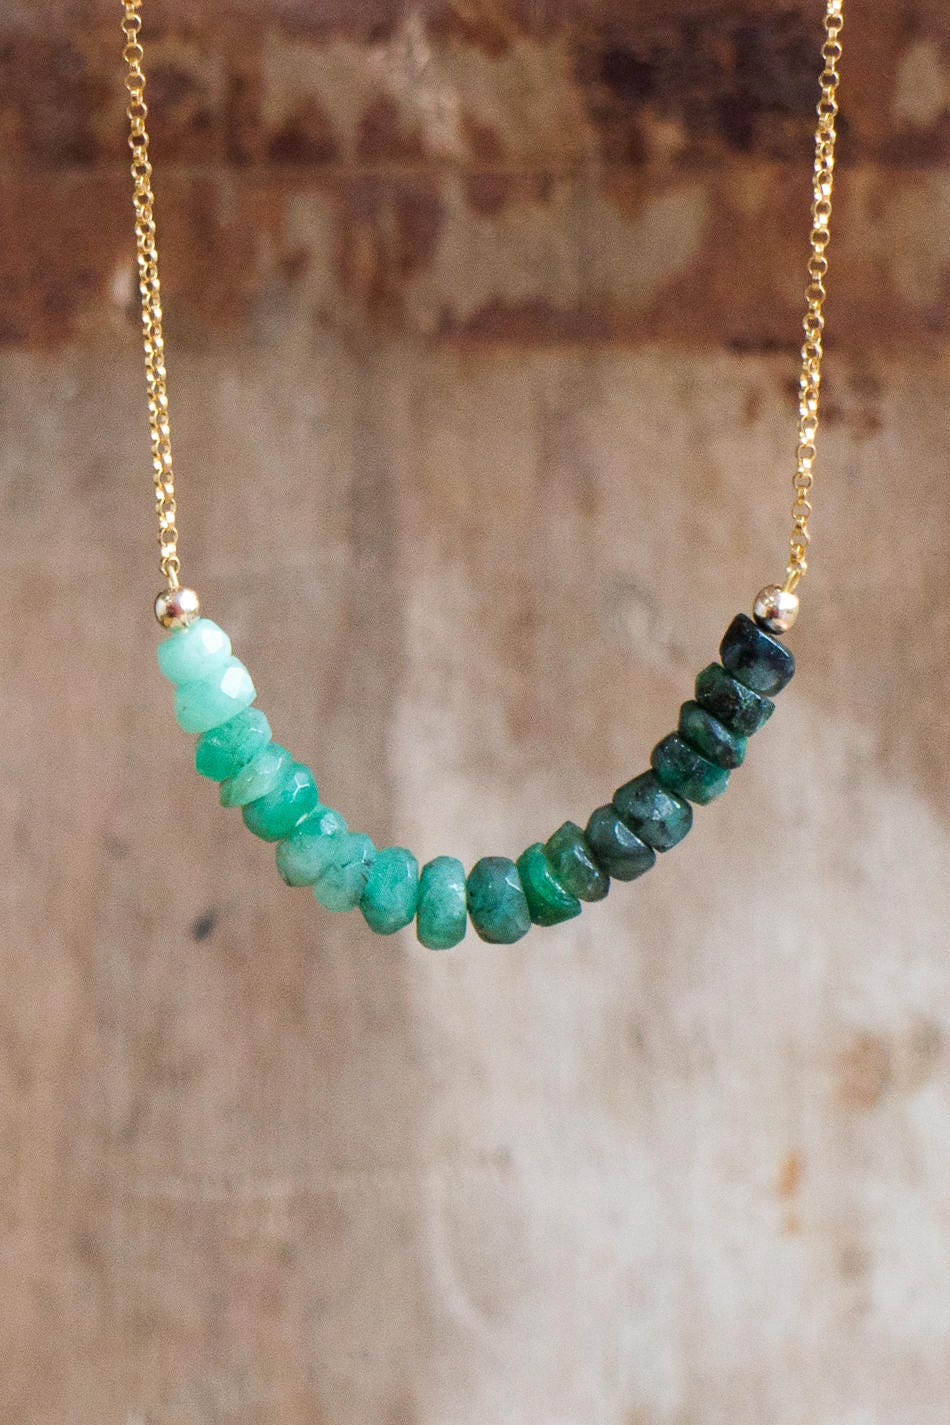 Raw Emerald Necklace, May Birthstone, Emerald Crystal Row Necklace, Silver Gold Emerald Jewellery, Emerald Ombre Green Layering Necklace